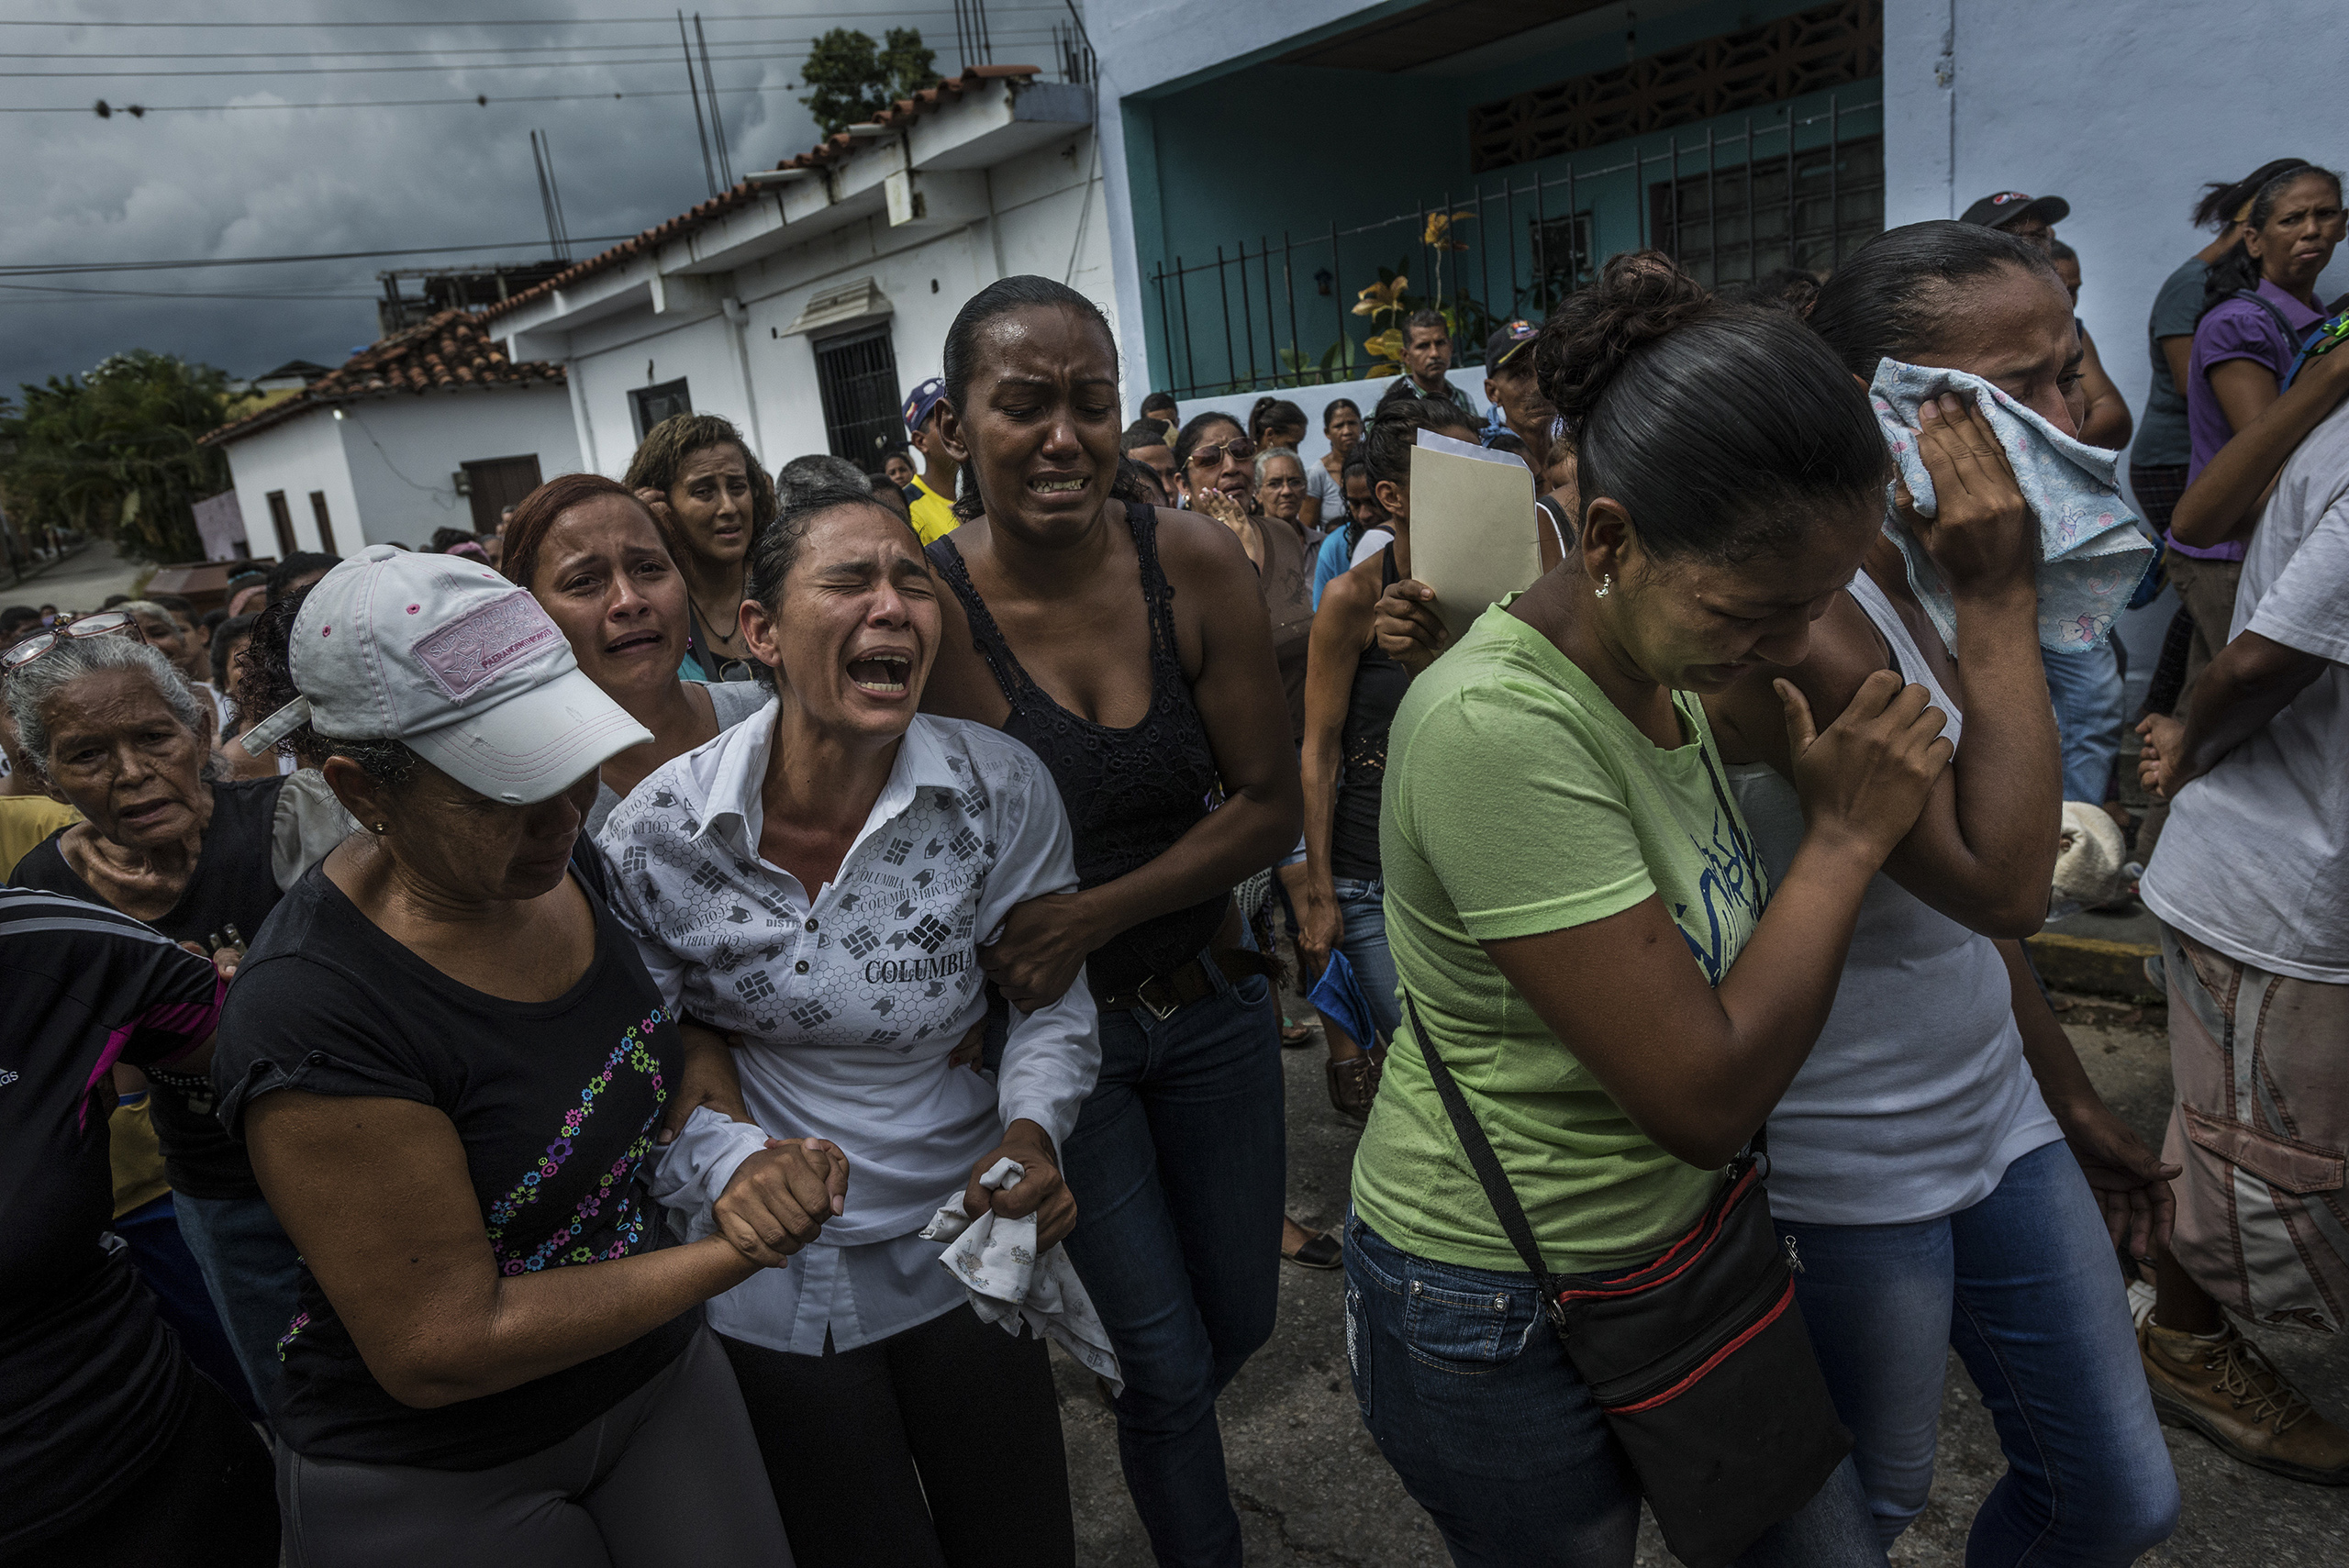 People mourn during a group funeral procession and memorial for four men, who were tortured and killed by the Venezuelan army, in the town of Capaya on Nov. 29, 2016. Throughout the country, armed military forces have become Venezuela's lawkeepers, engaging in commando-style raids that sometimes take on the profile of urban warfare.